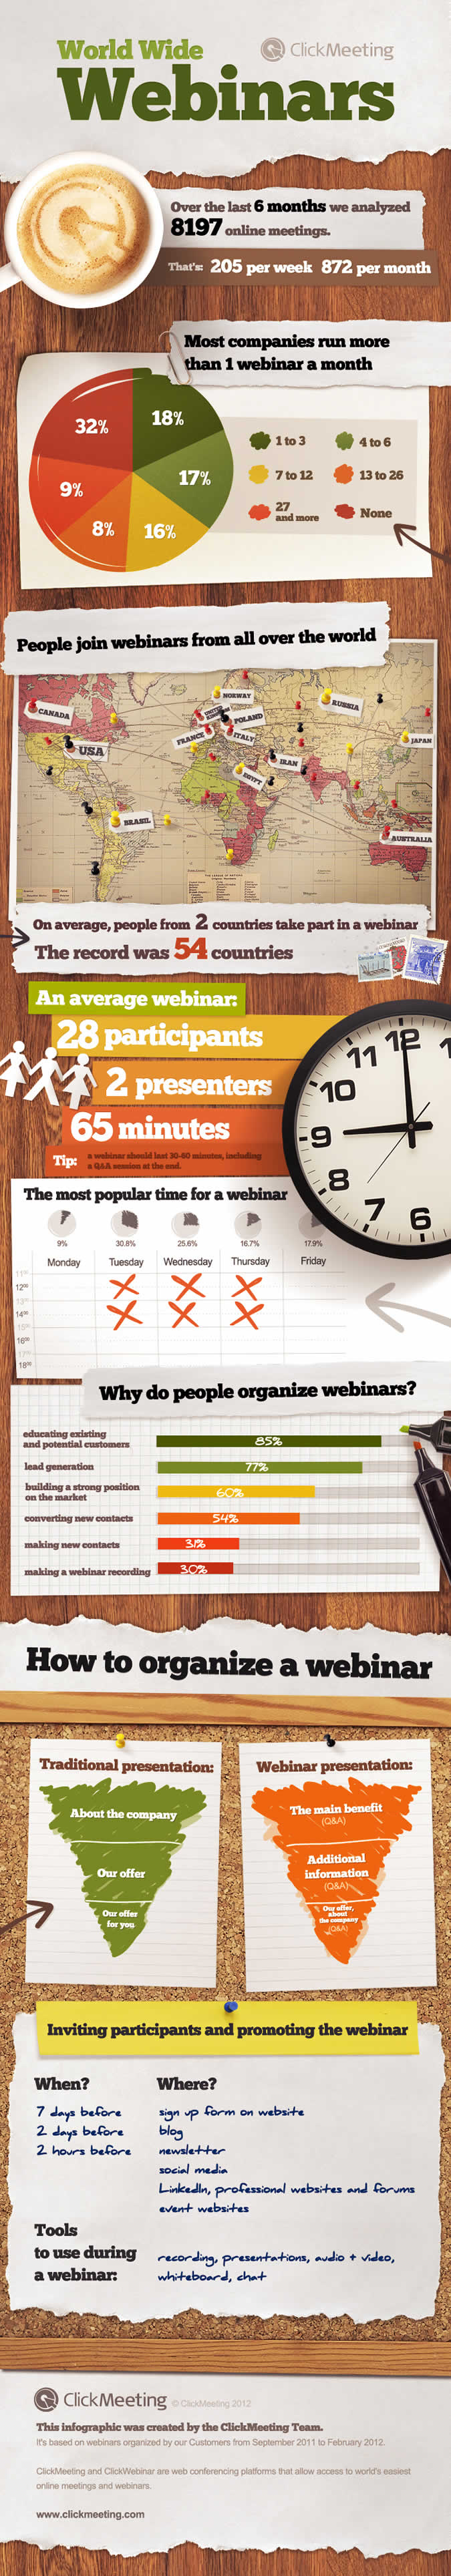 clickmeeting_infographic_7